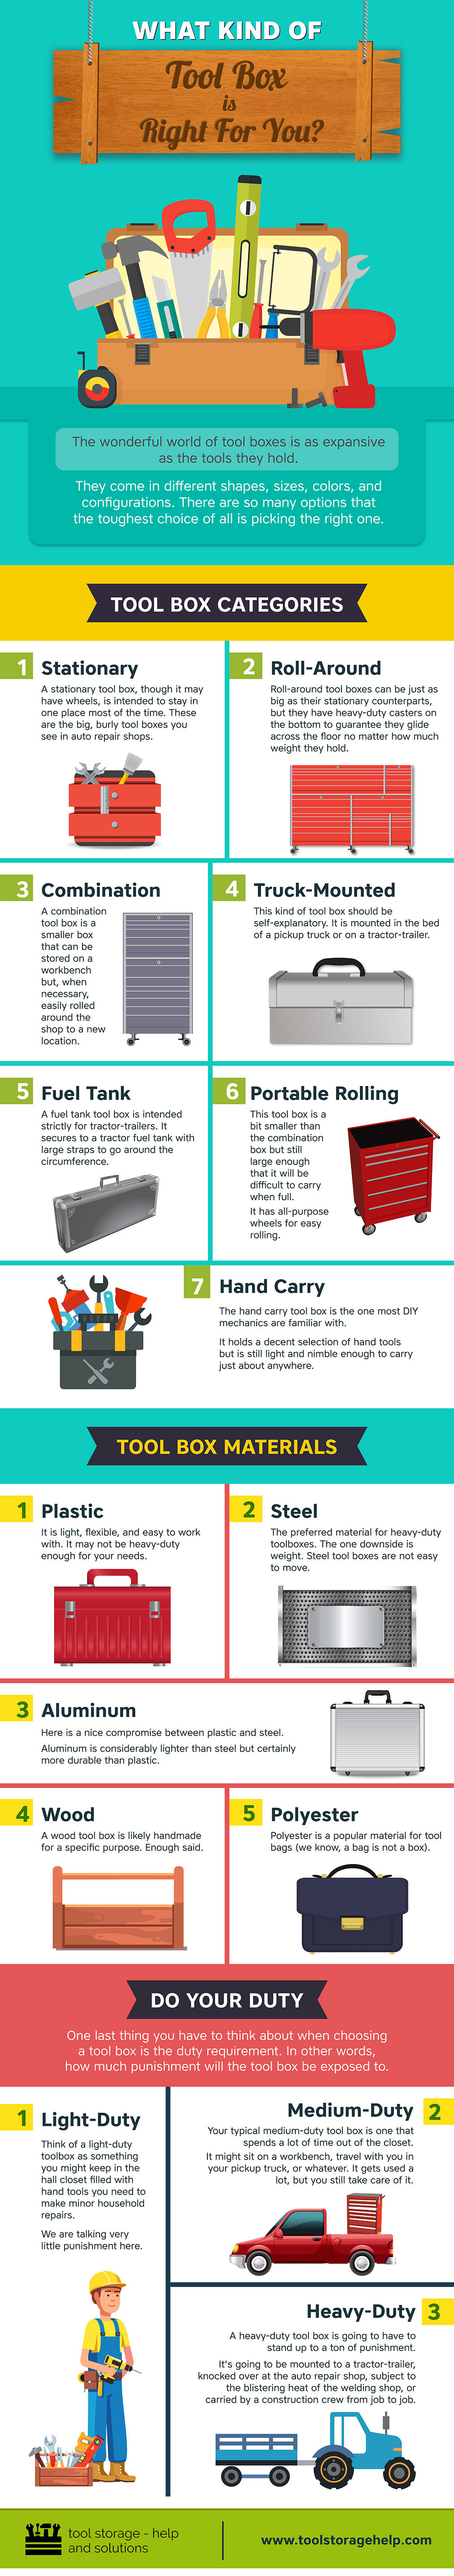 What Kind of Tool Box Is Right for You Infographic